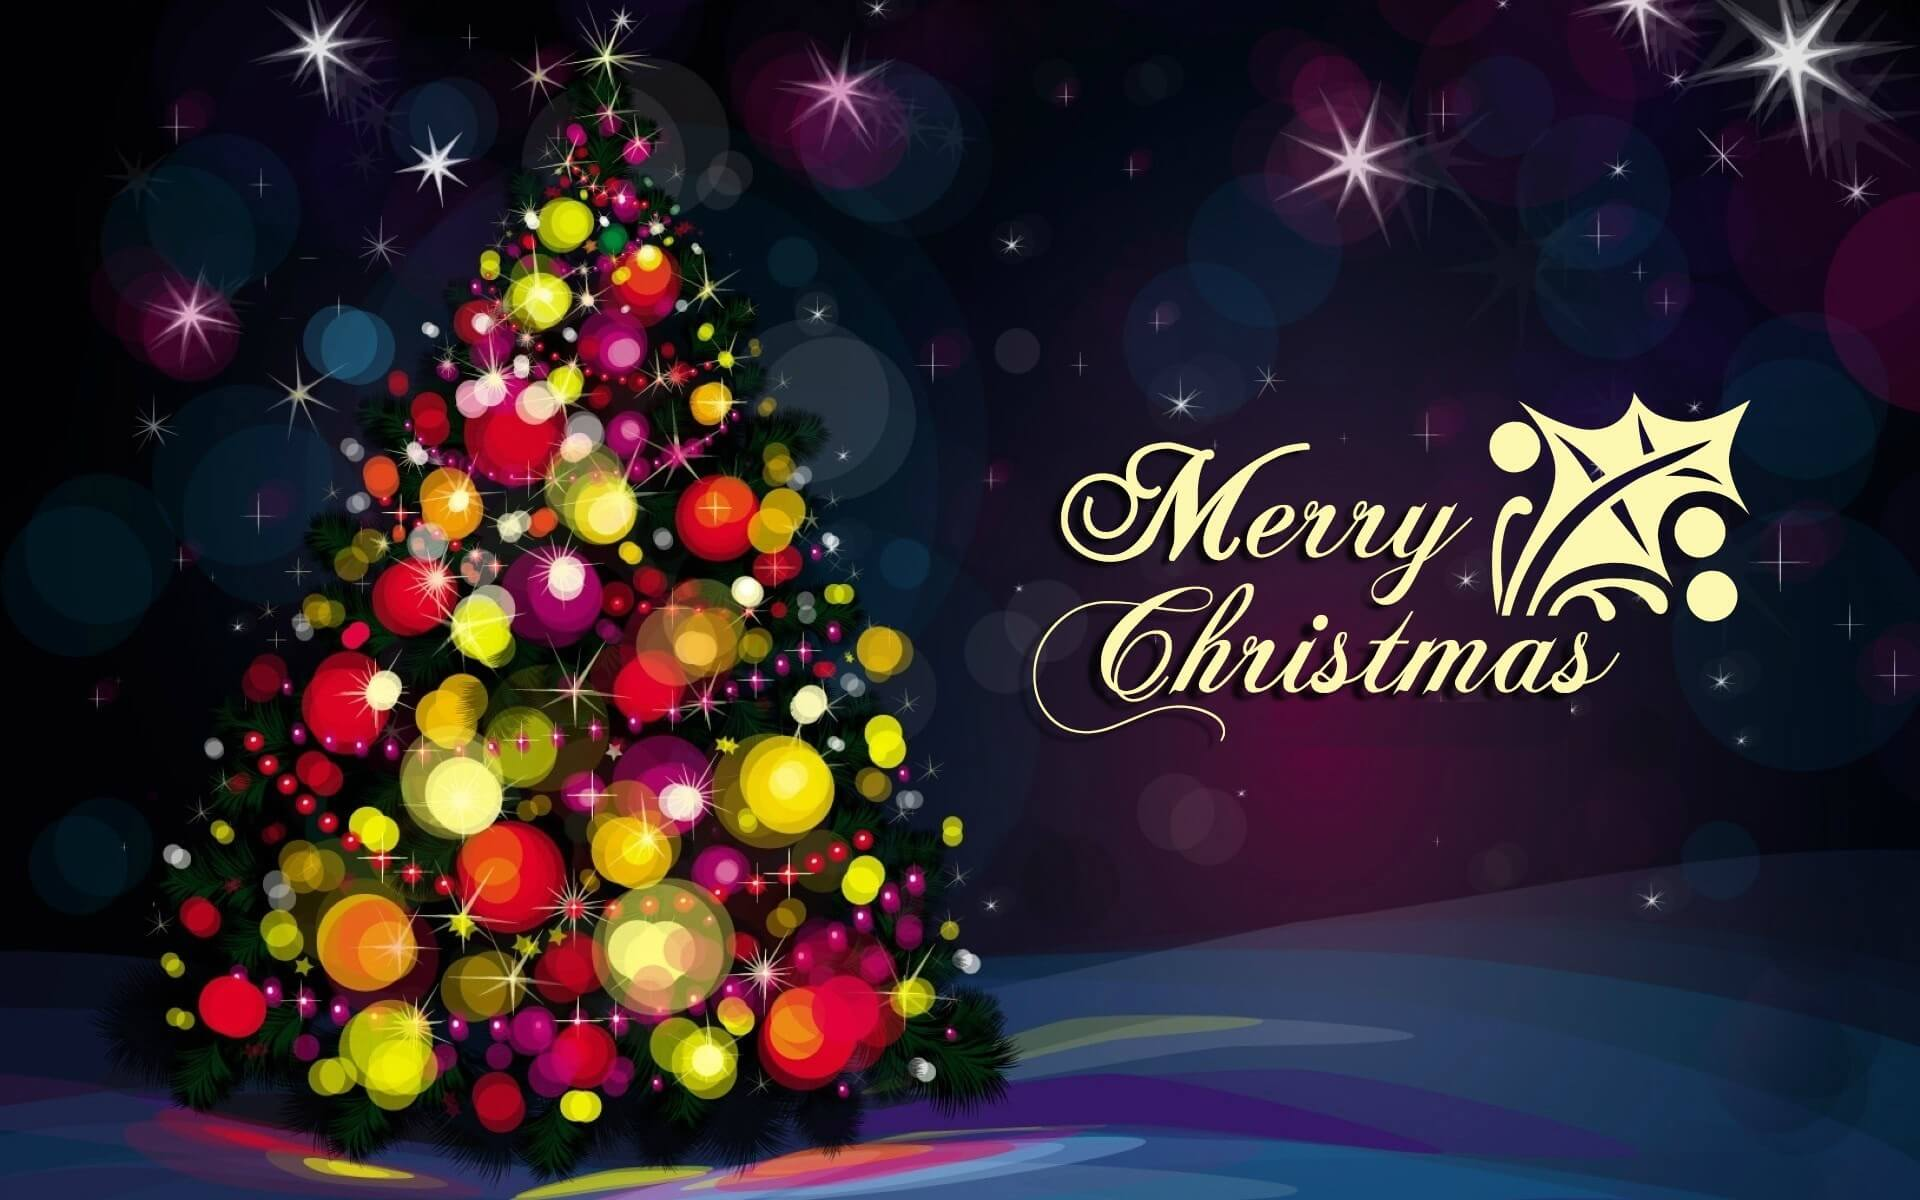 happy merry christmas wishes tree decorative celebration hd wallpaper